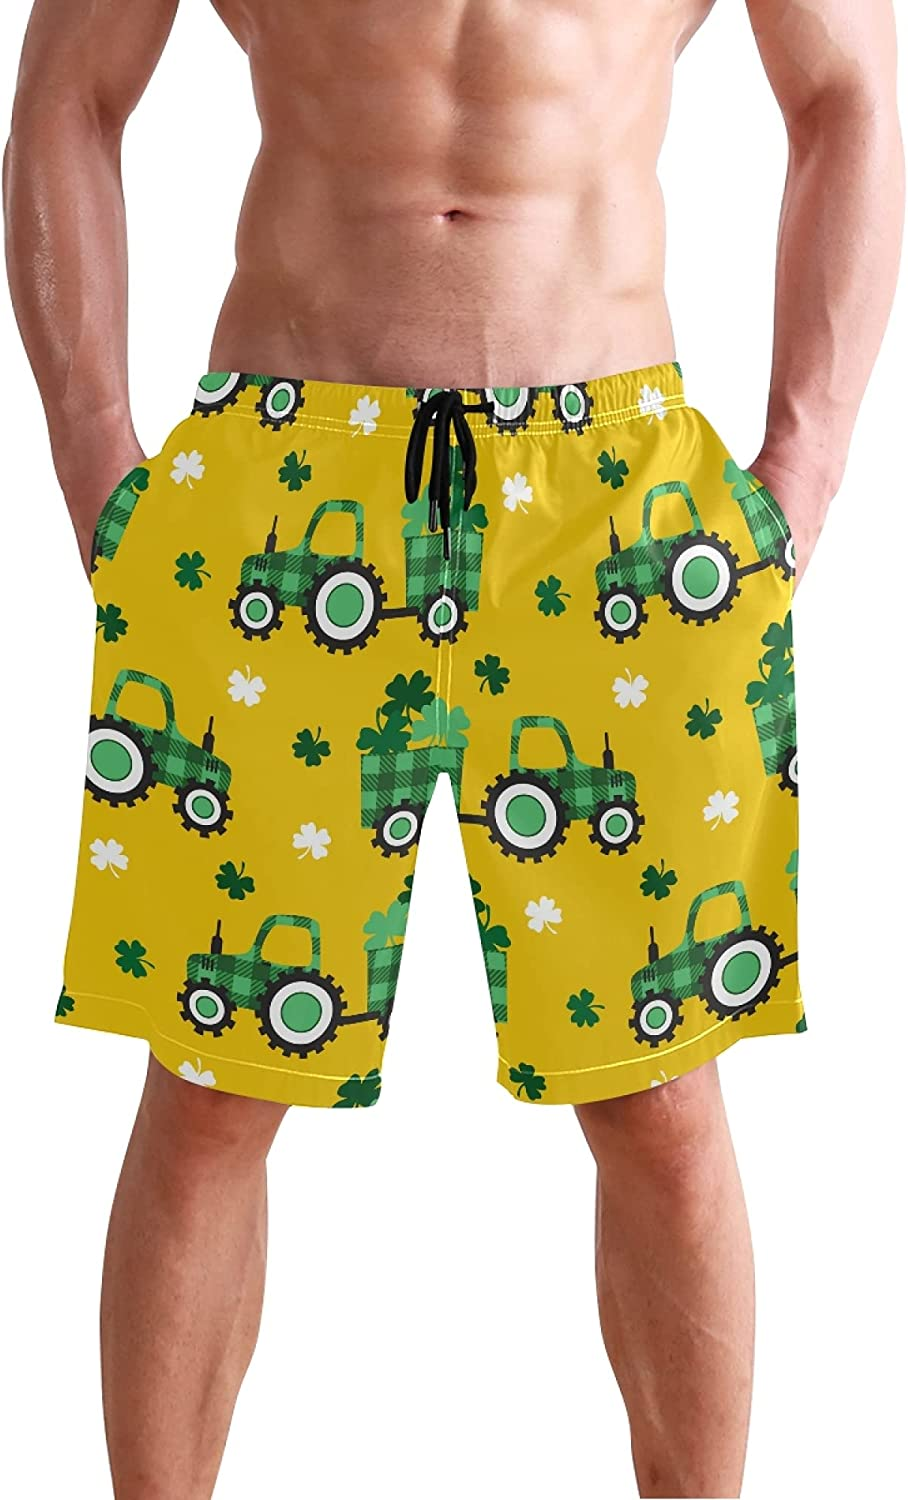 Beach Shorts Check Tractor Trailer Clover Leaves Butterfly Quick Dry Sports Swim Trunks Running Board Shorts for Man Boys